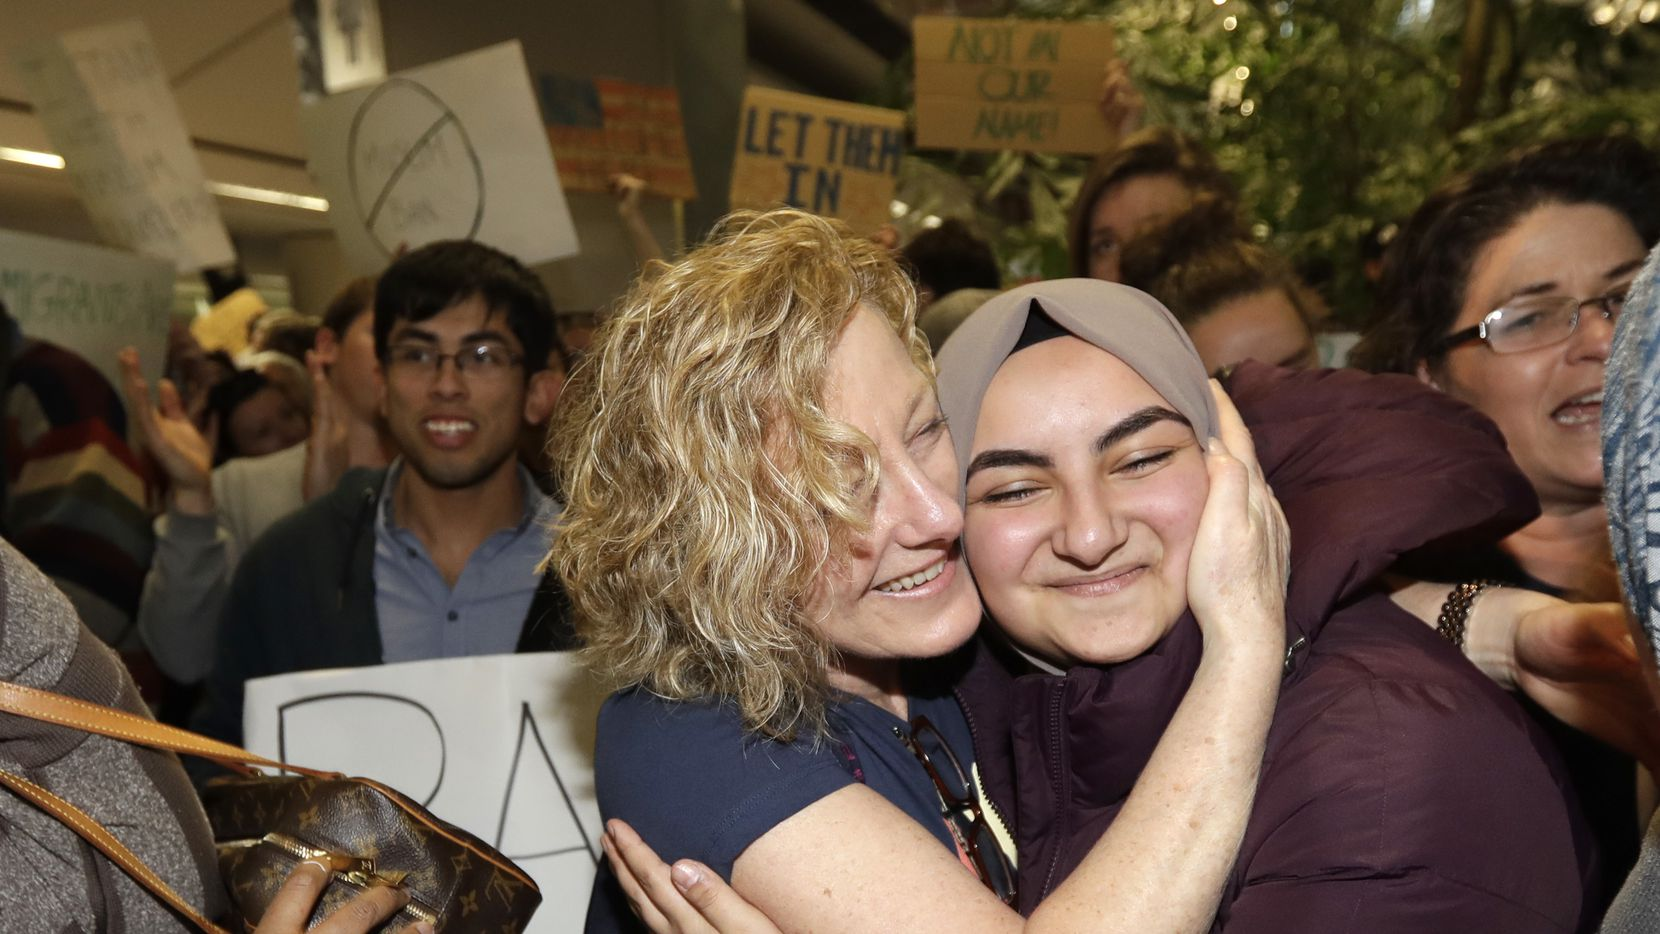 Demonstrators embrace in front of the arrivals terminal at San Francisco International Airport during demonstrations against President Donald Trump's executive order that bars citizens of seven predominantly Muslim countries from entering the U.S. Saturday, Jan. 28, 2017, in San Francisco.